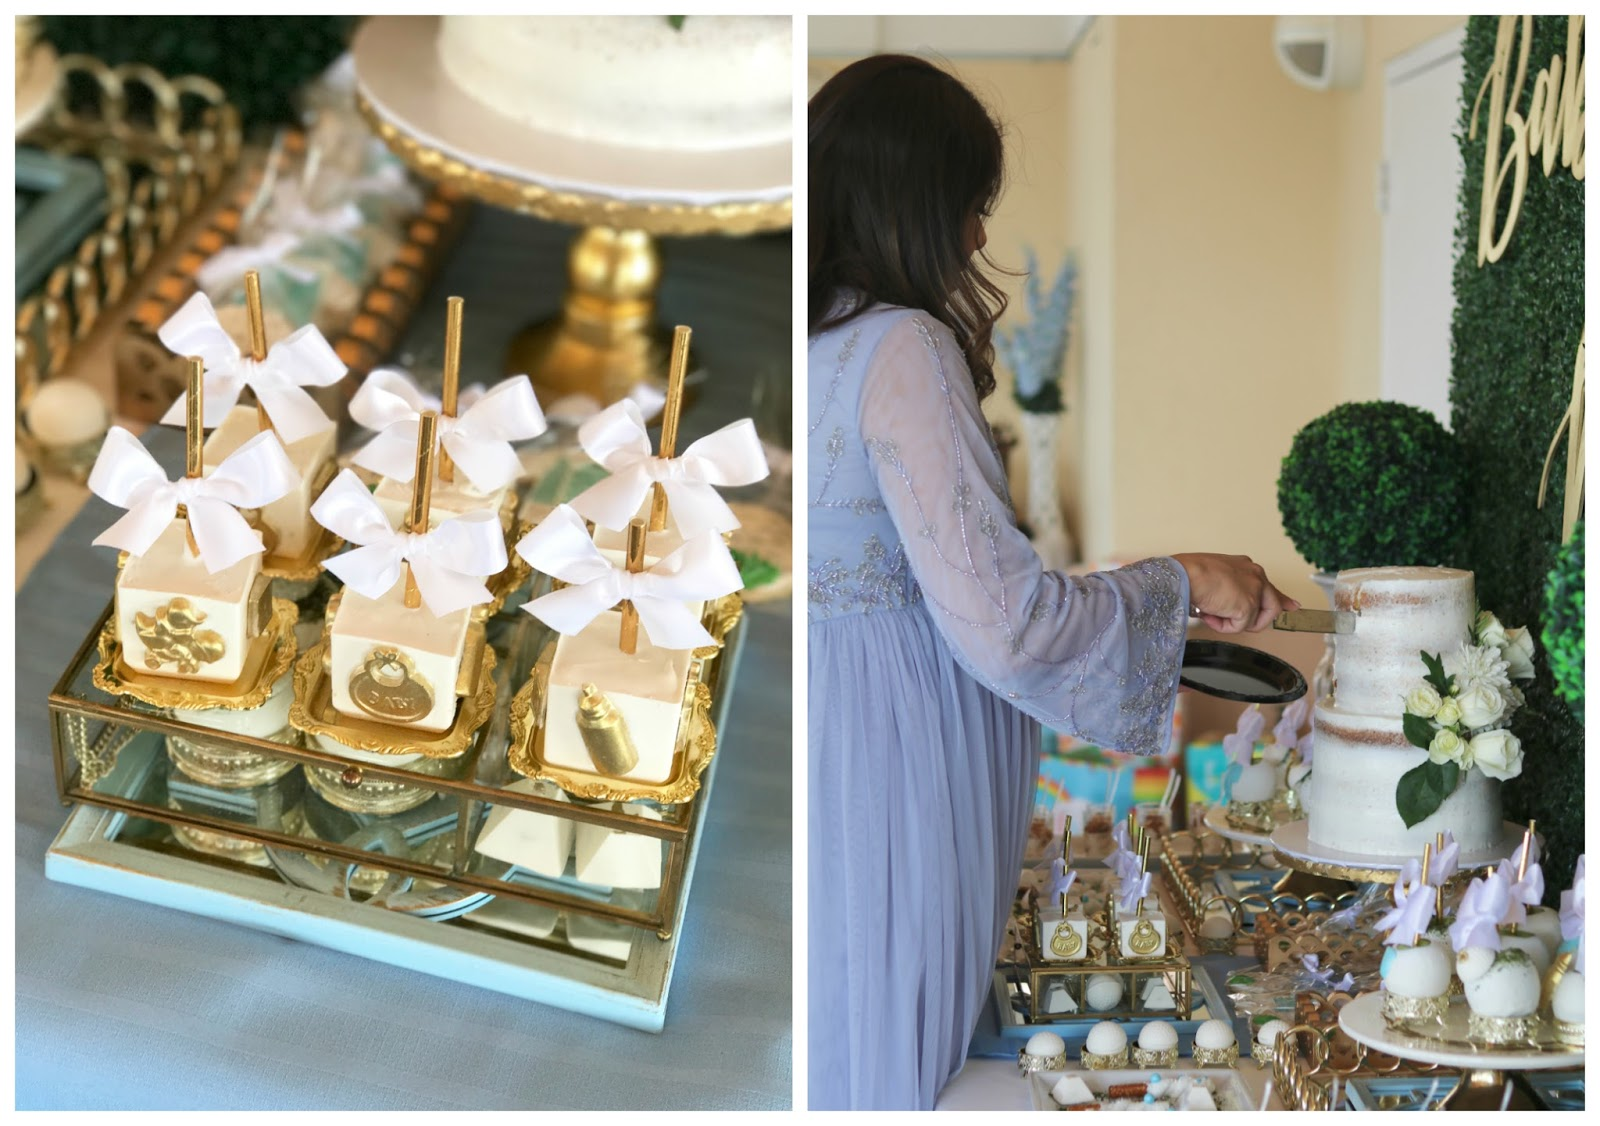 a fashion blogger's baby shower, chic dessert ideas, elegant dessert ideas